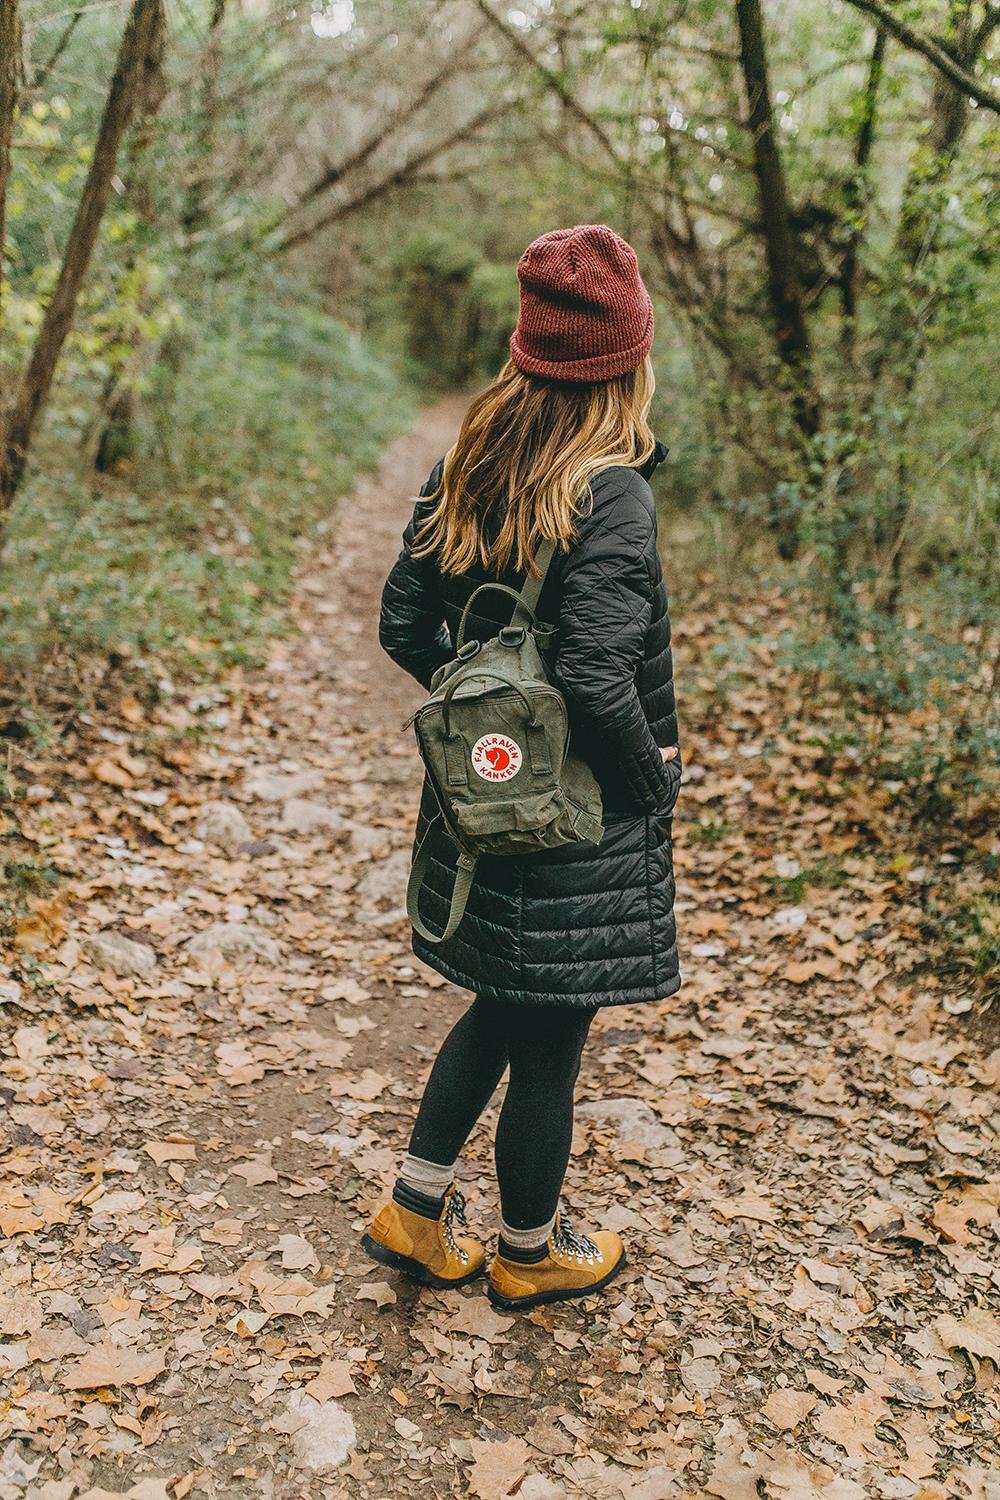 livvyland-blog-olivia-watson-austin-texas-fashion-lifestyle-blogger-greenbelt-fall-patagonia-radalie-parka-sorel-ainsley-boots-hiking-outfit-backcountry-9